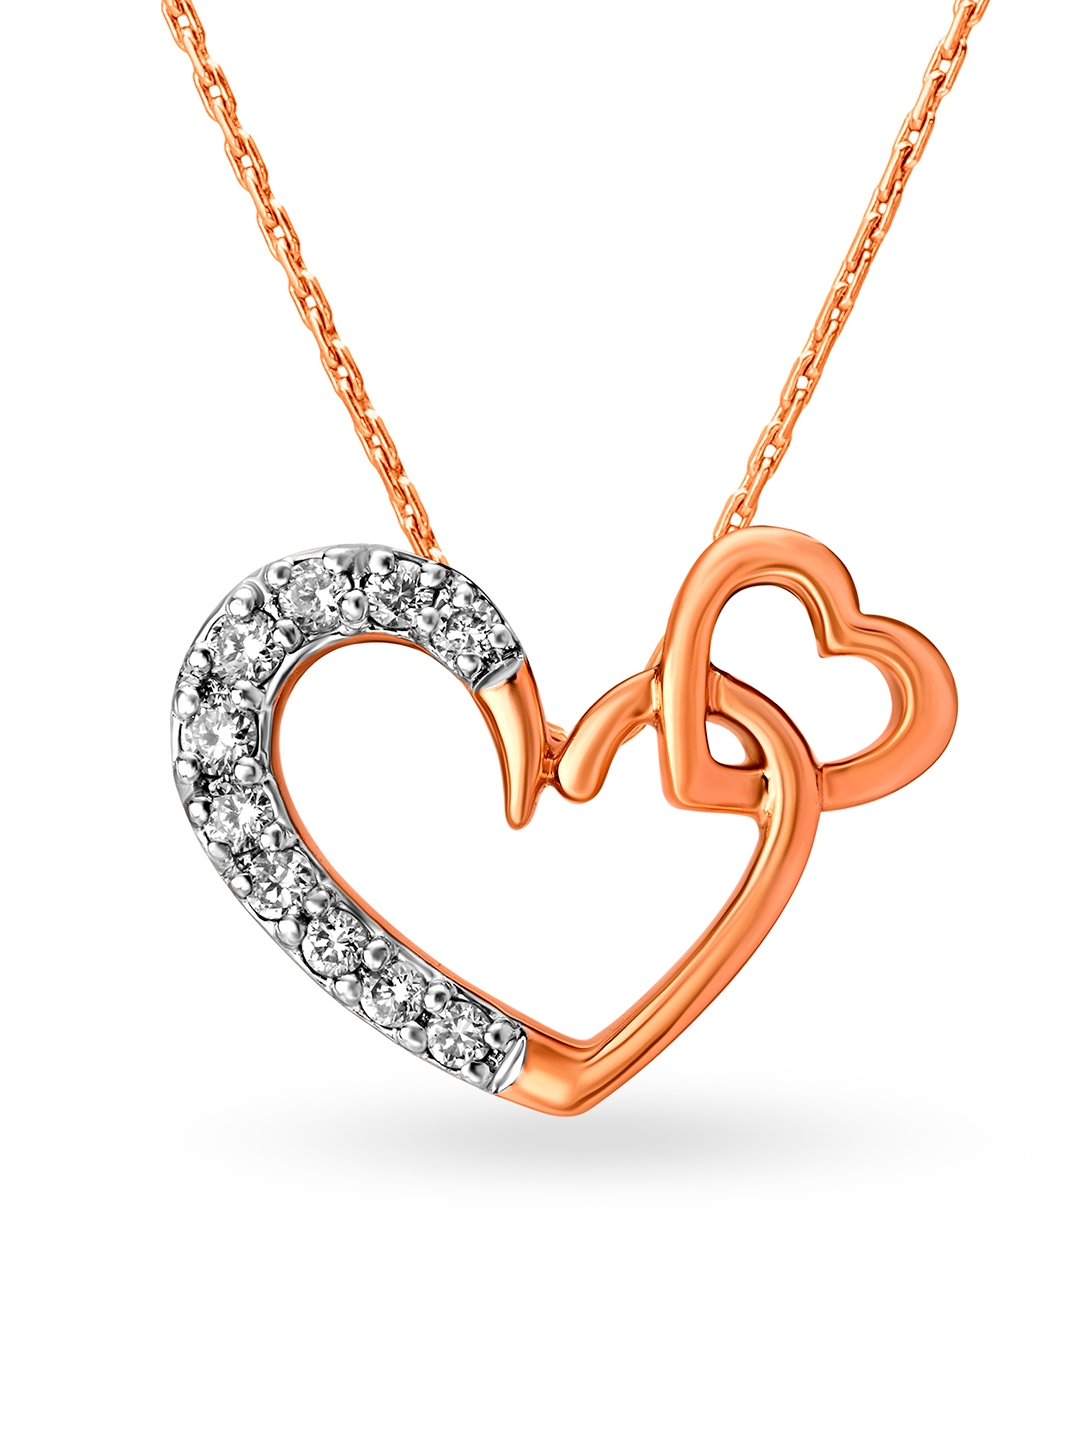 Mia by Tanishq 14KT Rose Gold Diamond Pendant